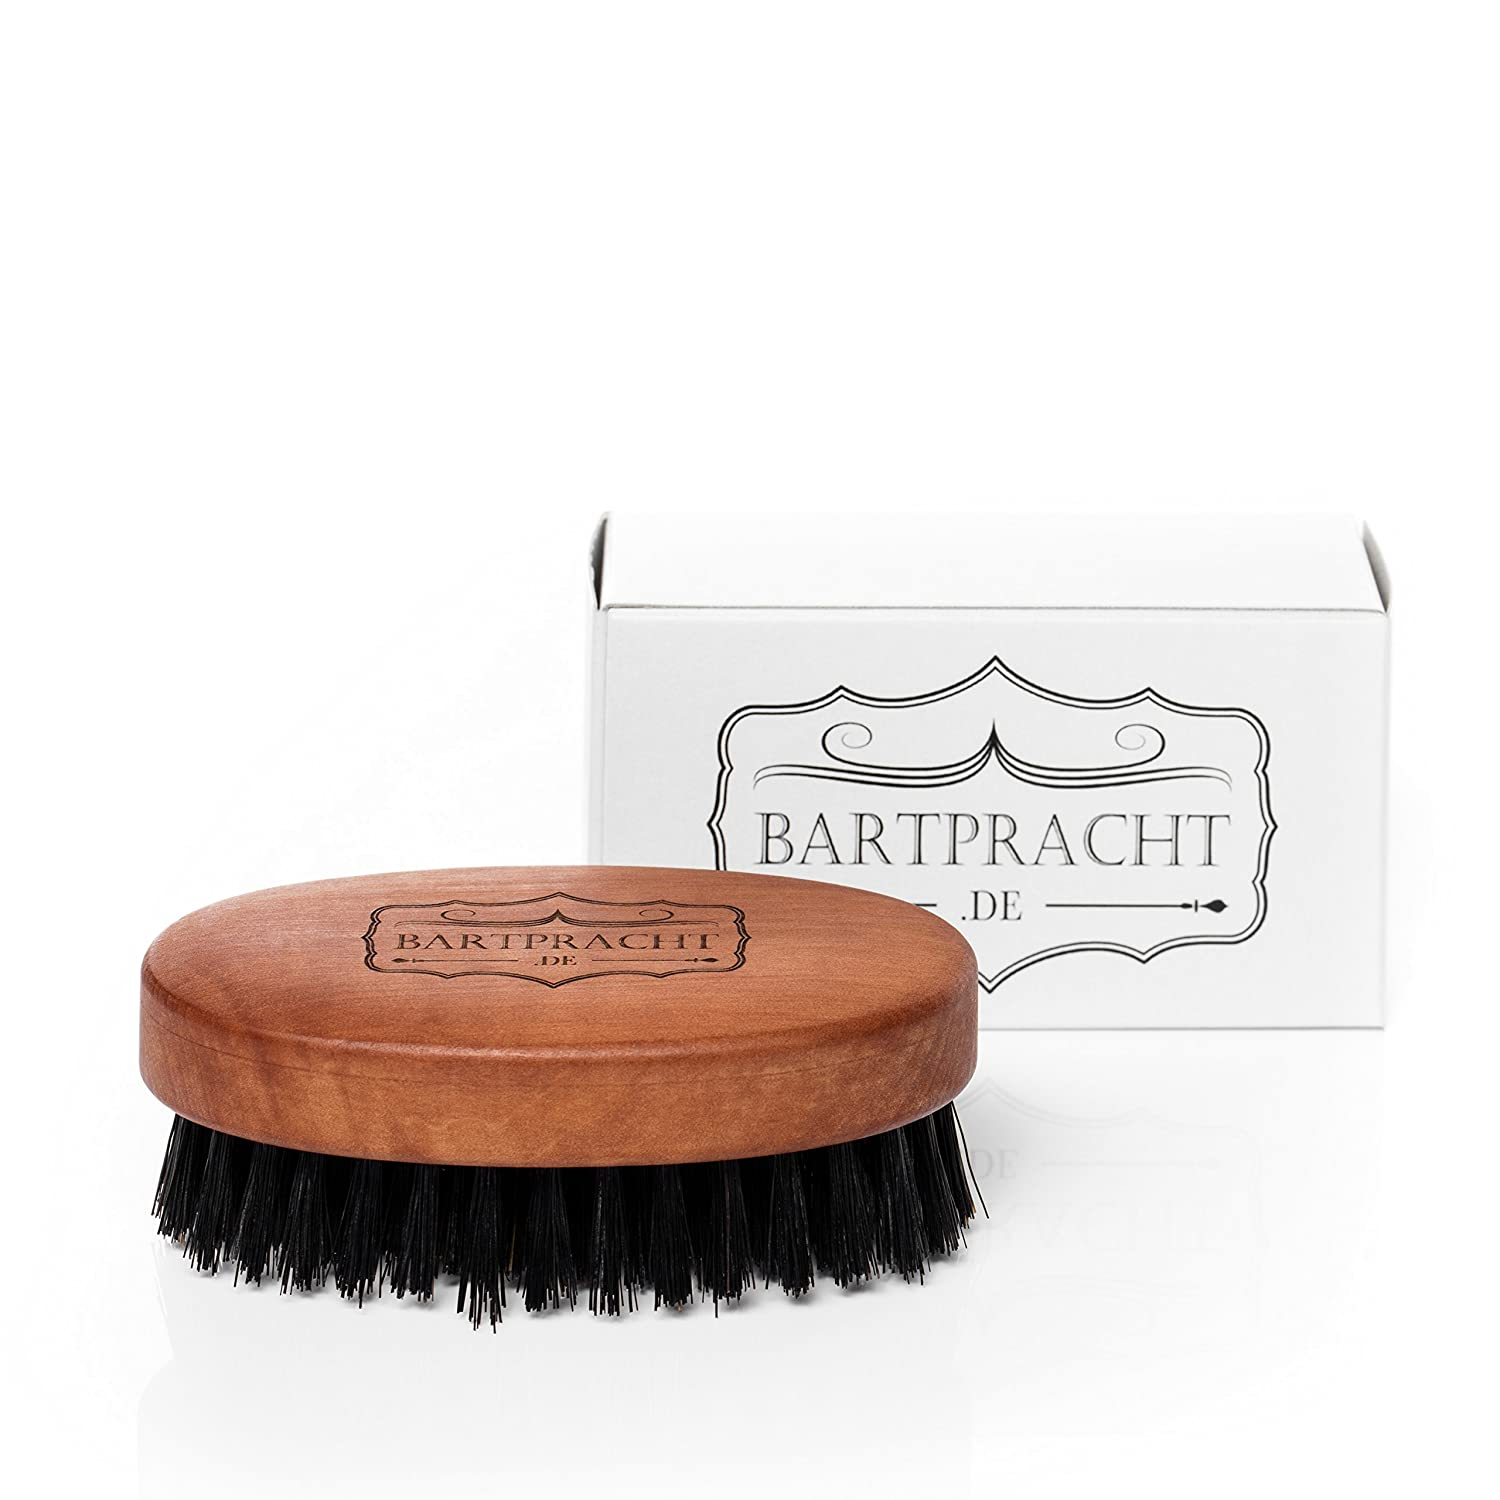 Beard brush, oval, 50 x 90 mm large, 7 rows Bartpracht GmbH 788454786830